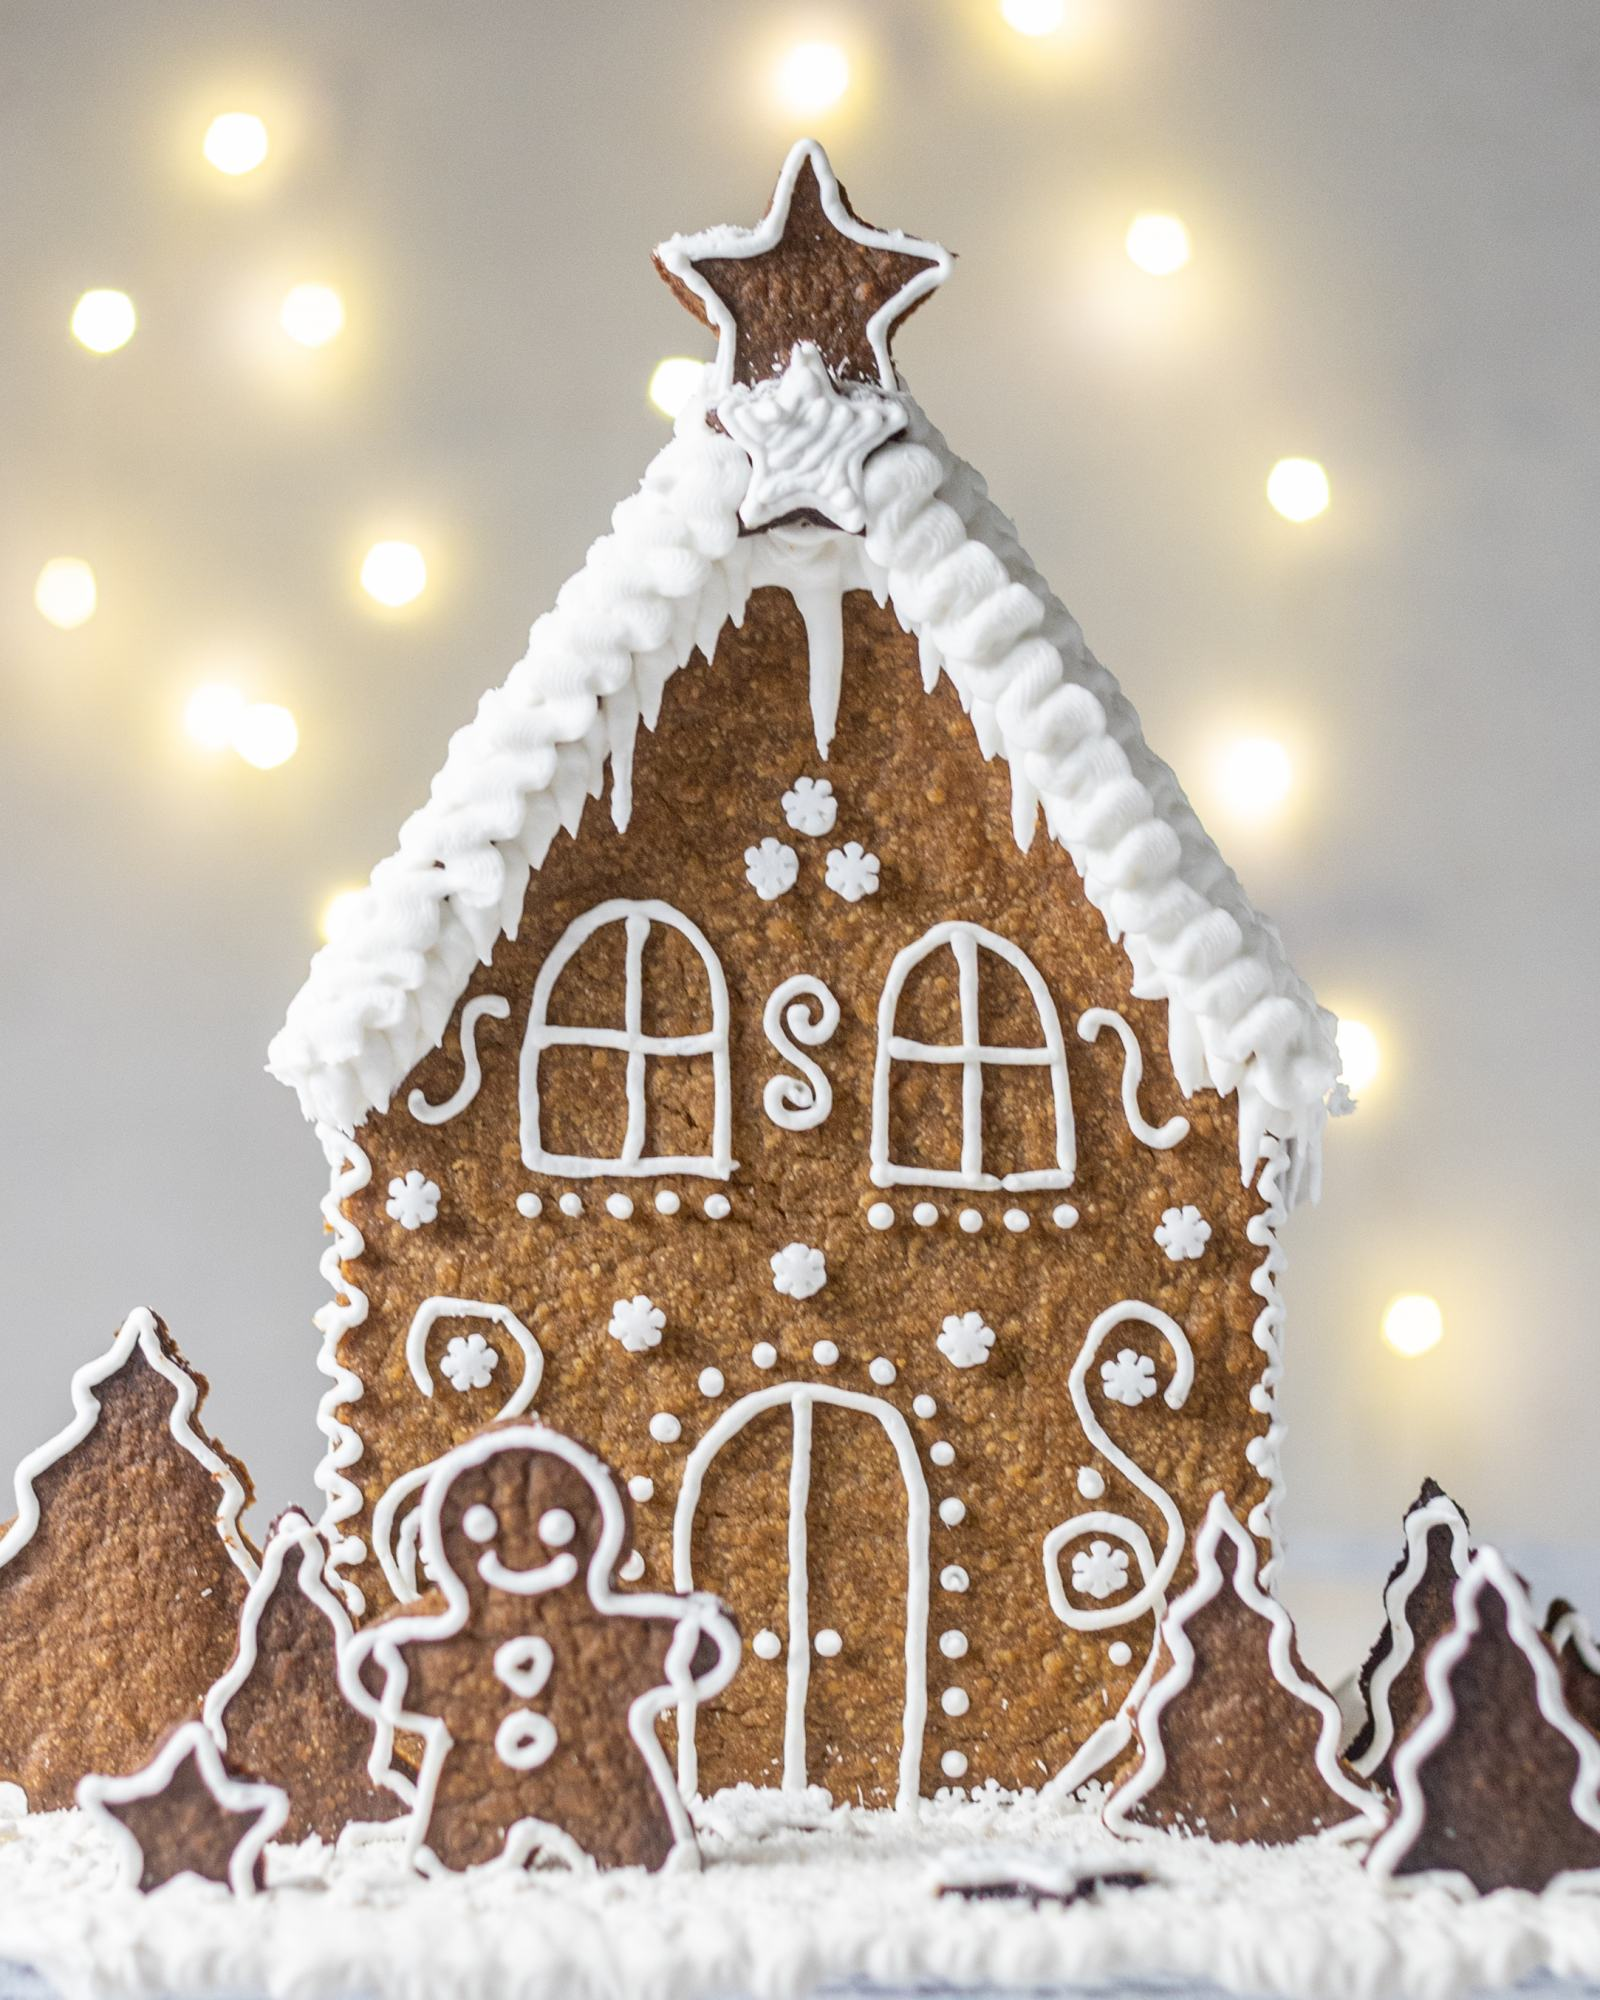 Vegan Gingerbread House, decorated with white buttercream and 'Ho Ho' written on the back, with white roof, photographed on a light backdrop with fairy lights